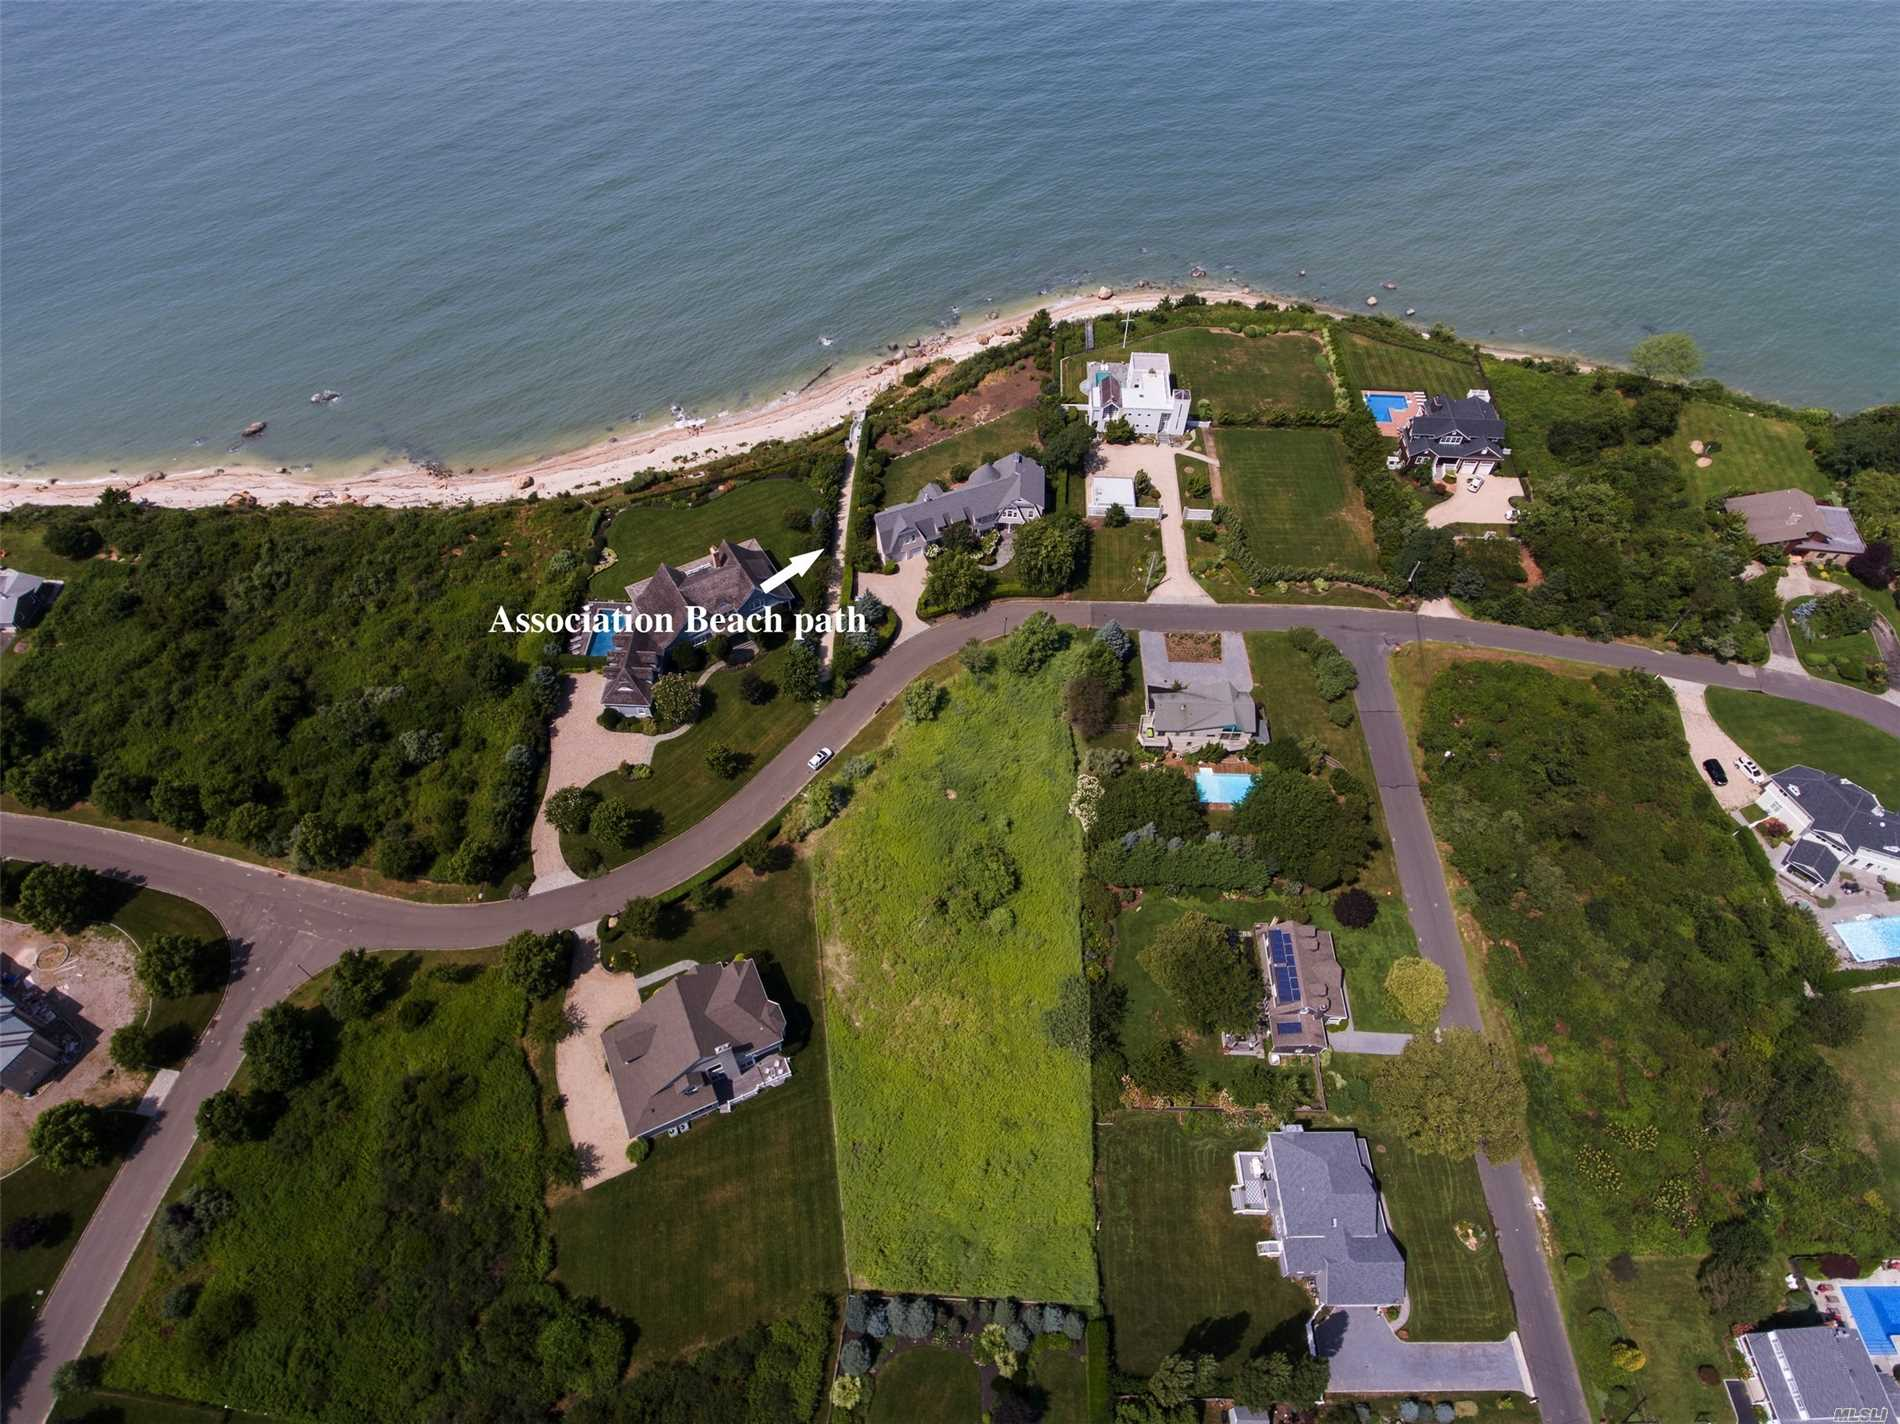 Build-Able Level .85 Acre Parcel In Rock Cove Estates. Entrance To Association Sound Beach Directly Across The Street. Granted Department Of Health Approval Until 2021. Public Water, Gas, Electric & Cable In The Street. Neighborhood Has Buried Utility Lines, Allowing Uninterrupted Site Lines. Room For A Pool. Hoa Dues $500/Yr.